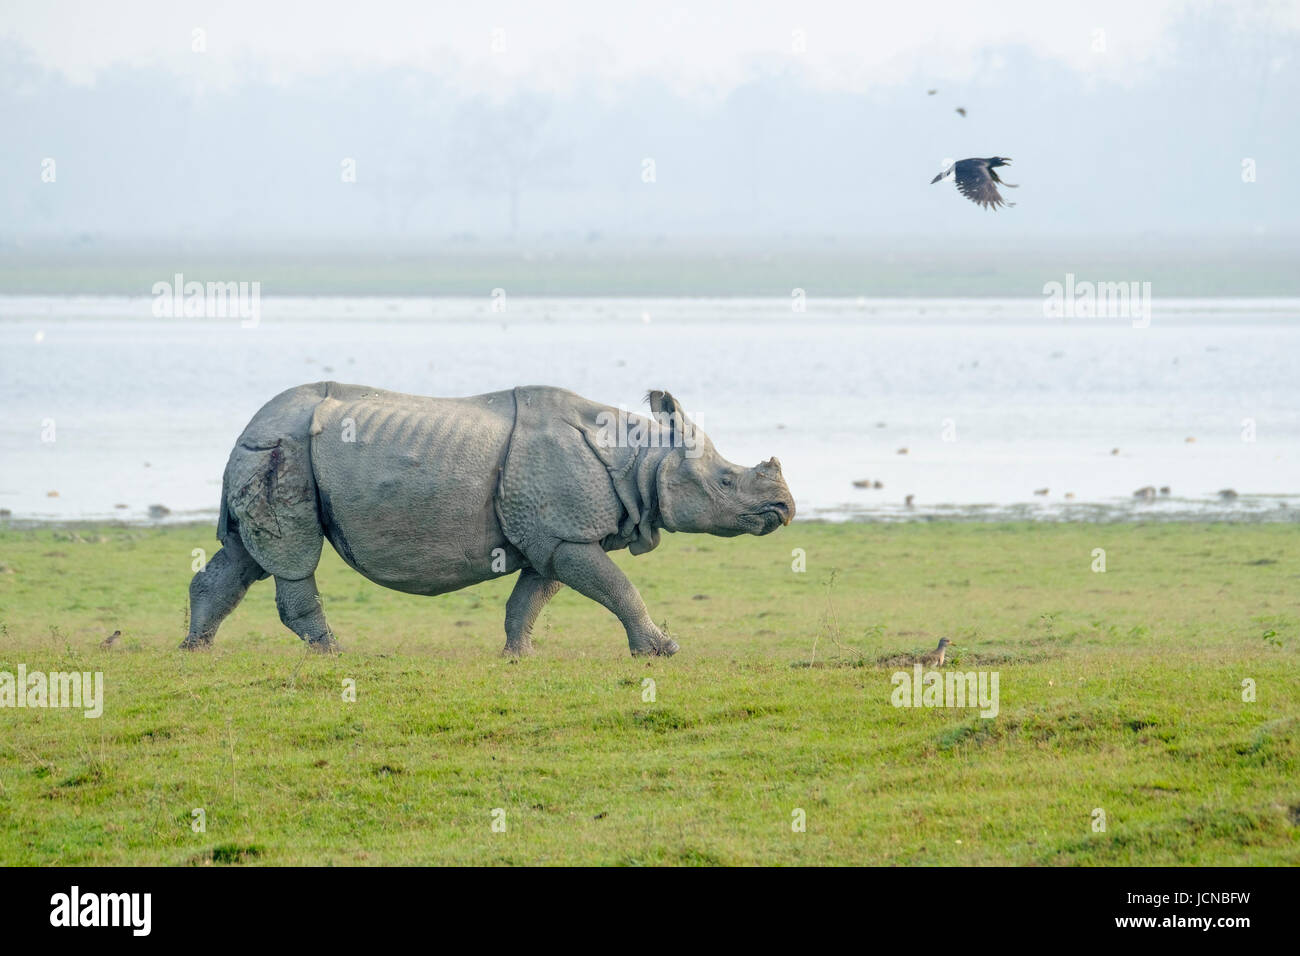 Indian rhinoceros (Rhinoceros unicornis),  native to the  Indian subcontinent, (vulnerable species). - Stock Image